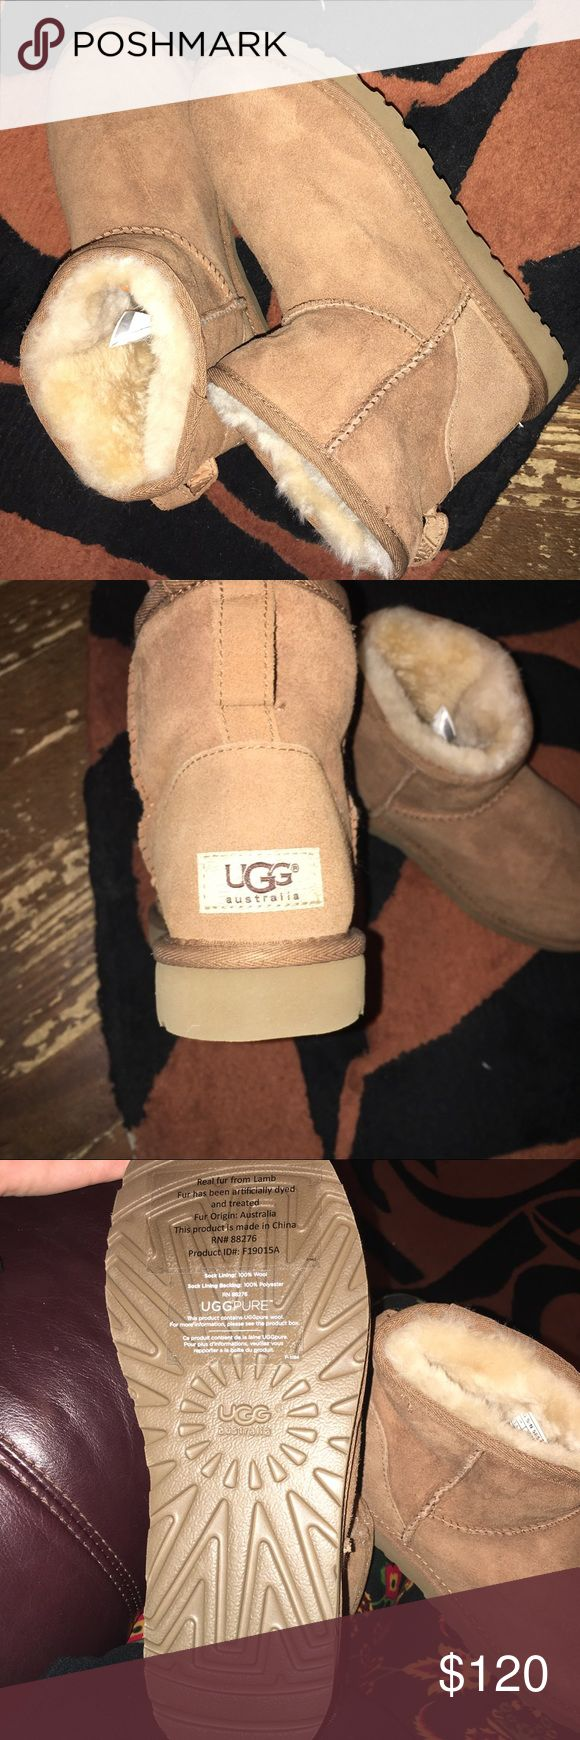 Authentic NEW ugg short boots Size 7 , received for Christmas only to find out I need a 6 in uggs so only selling because they are to big. Brand new and authentic posted pics of tag! Will do sw.aps or sell.  ‼️‼️If you ask to sw.ap you MUST have positive reviews like me. UGG Shoes Ankle Boots & Booties